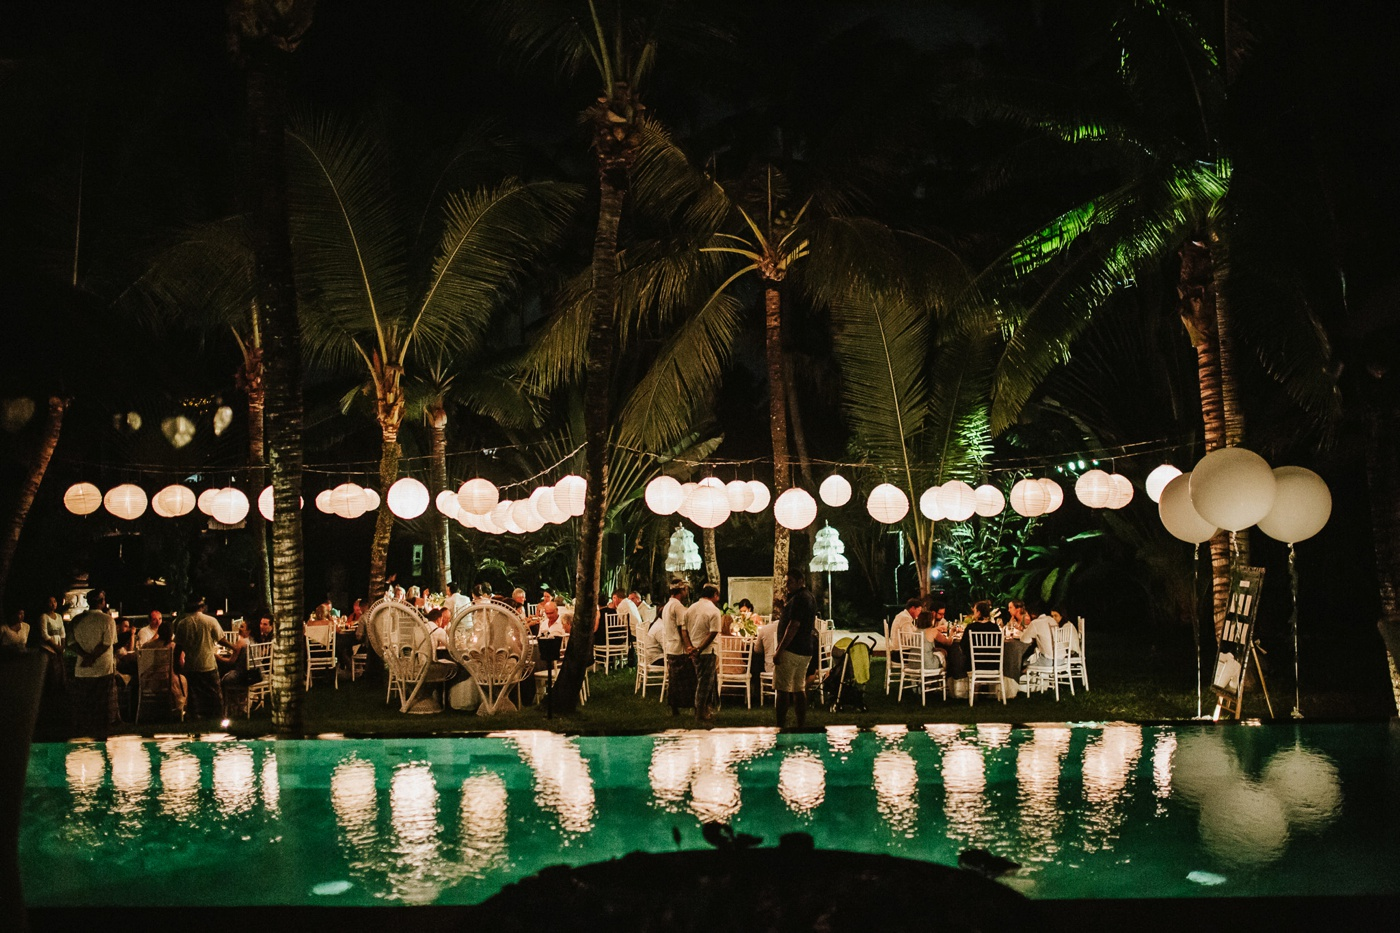 Deb-Ibs_Bali-Tropical-Relaxed-Wedding_Destination-Wedding-Photography_Melbourne-Wedding-Photographer_125